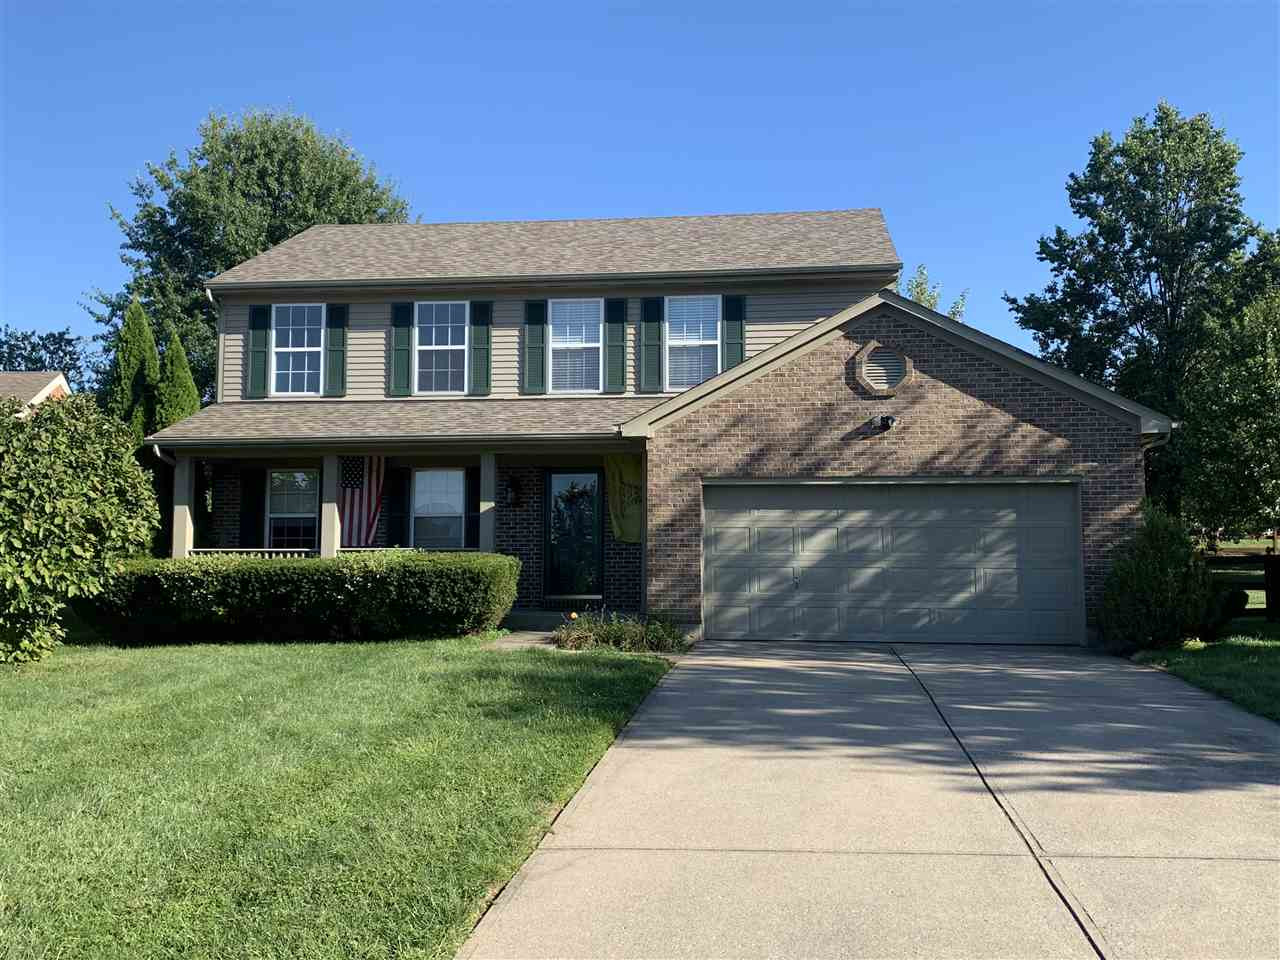 Photo 1 for 2590 Eastwind Ct Burlington, KY 41005